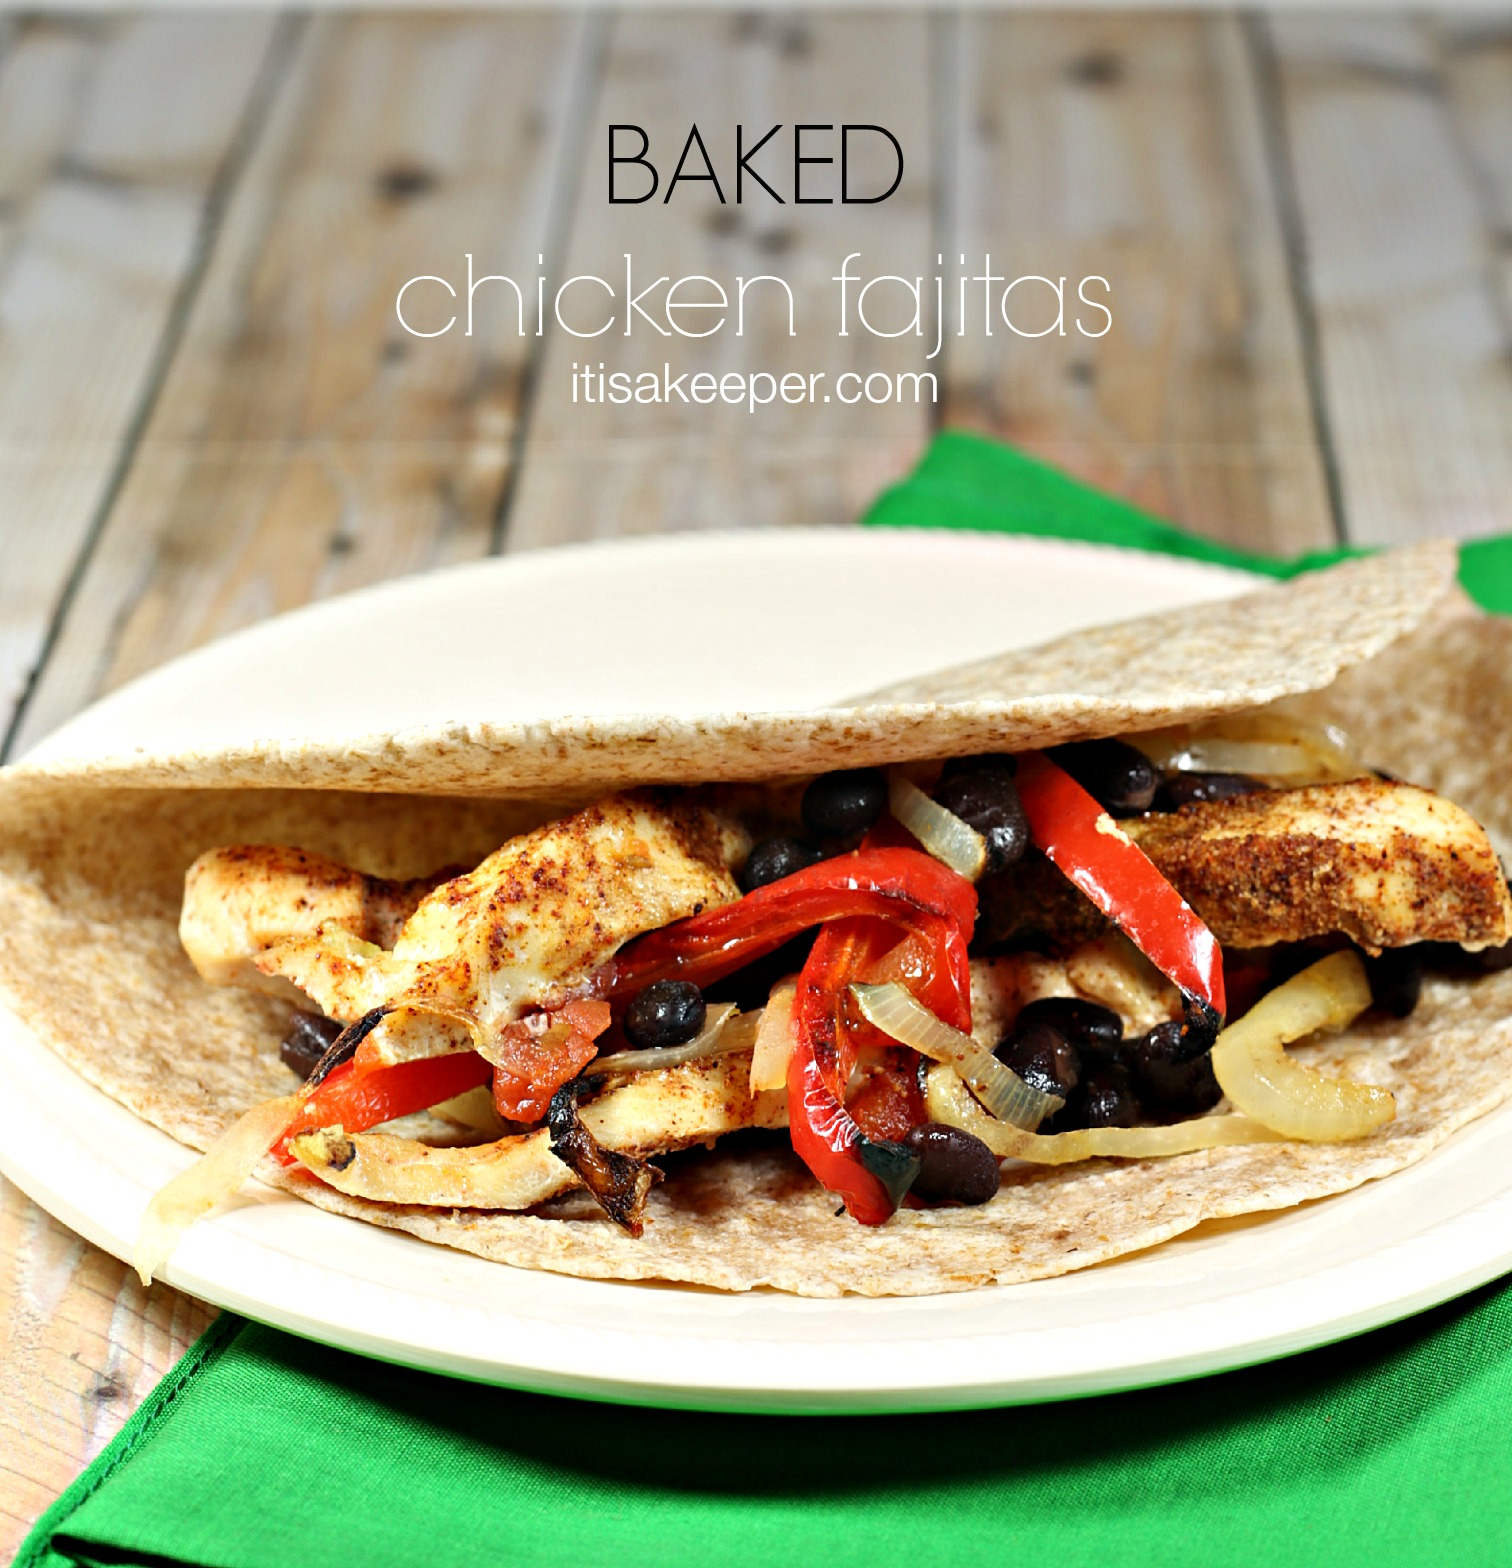 Baked Chicken Fajitas